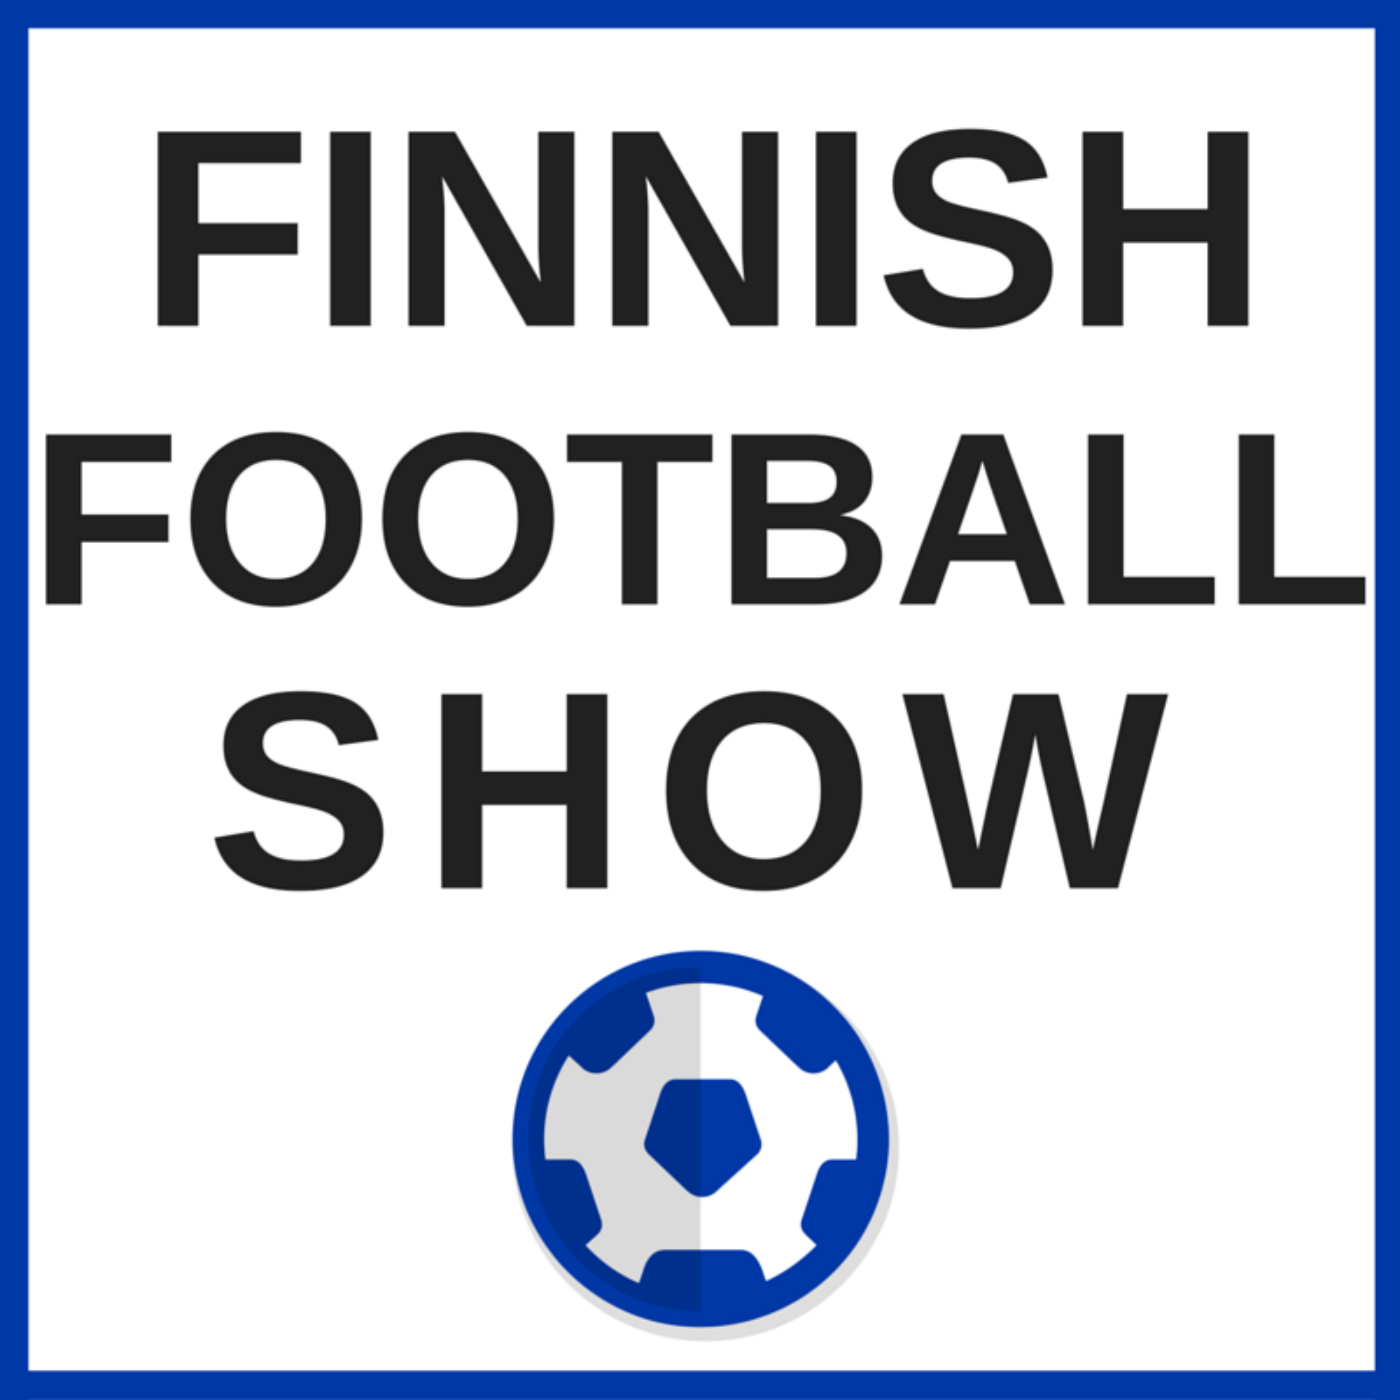 Finnish Football Show – Explore Finland Radio Show